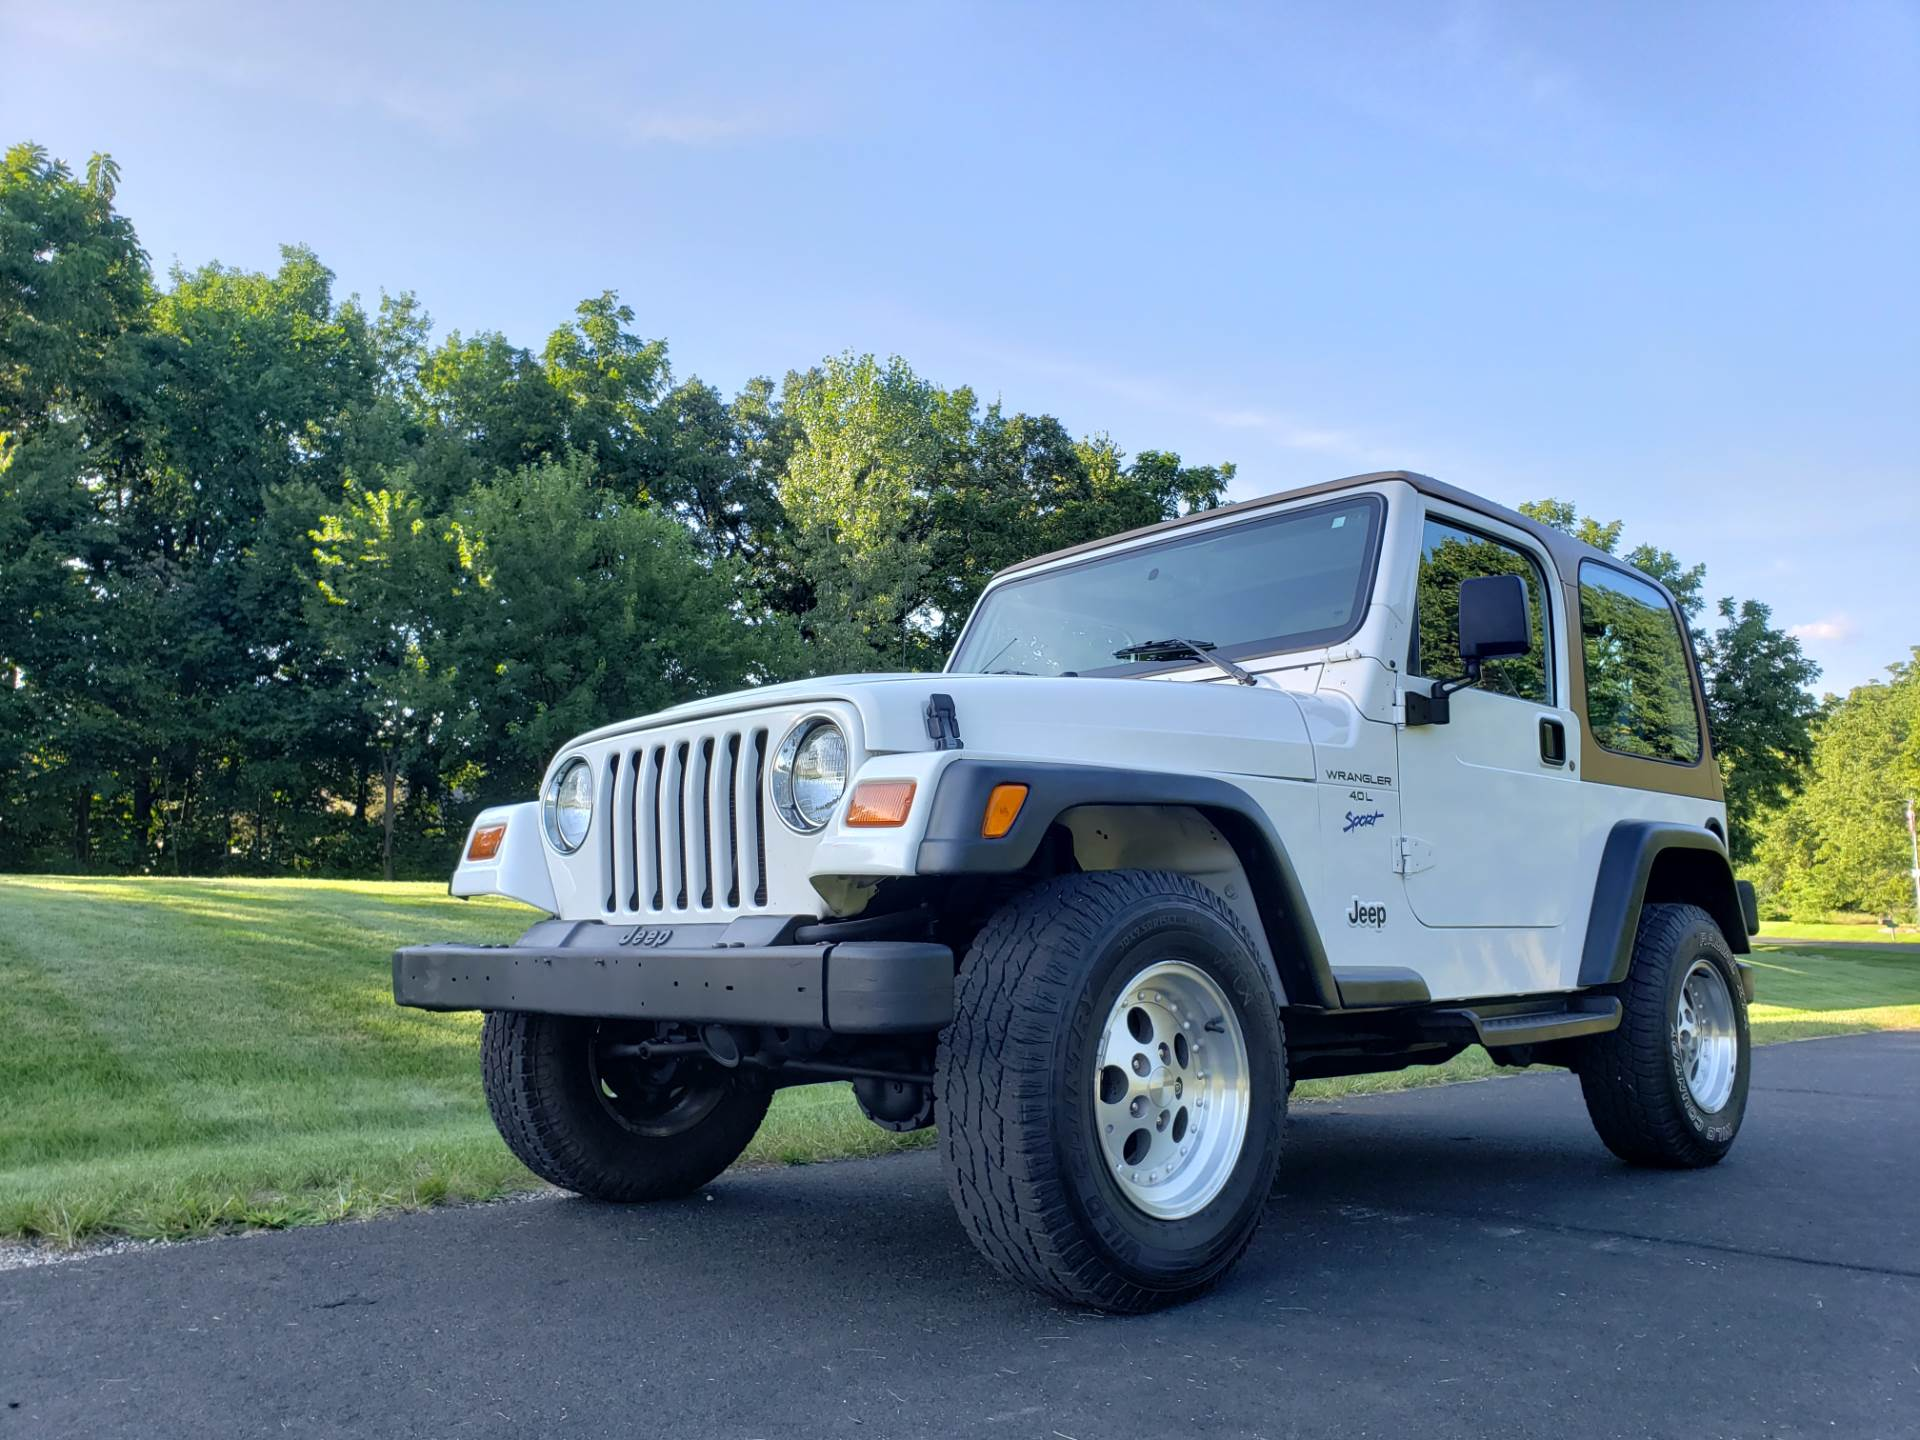 1997 Jeep Wrangler Sport 2dr 4WD SUV in Big Bend, Wisconsin - Photo 54